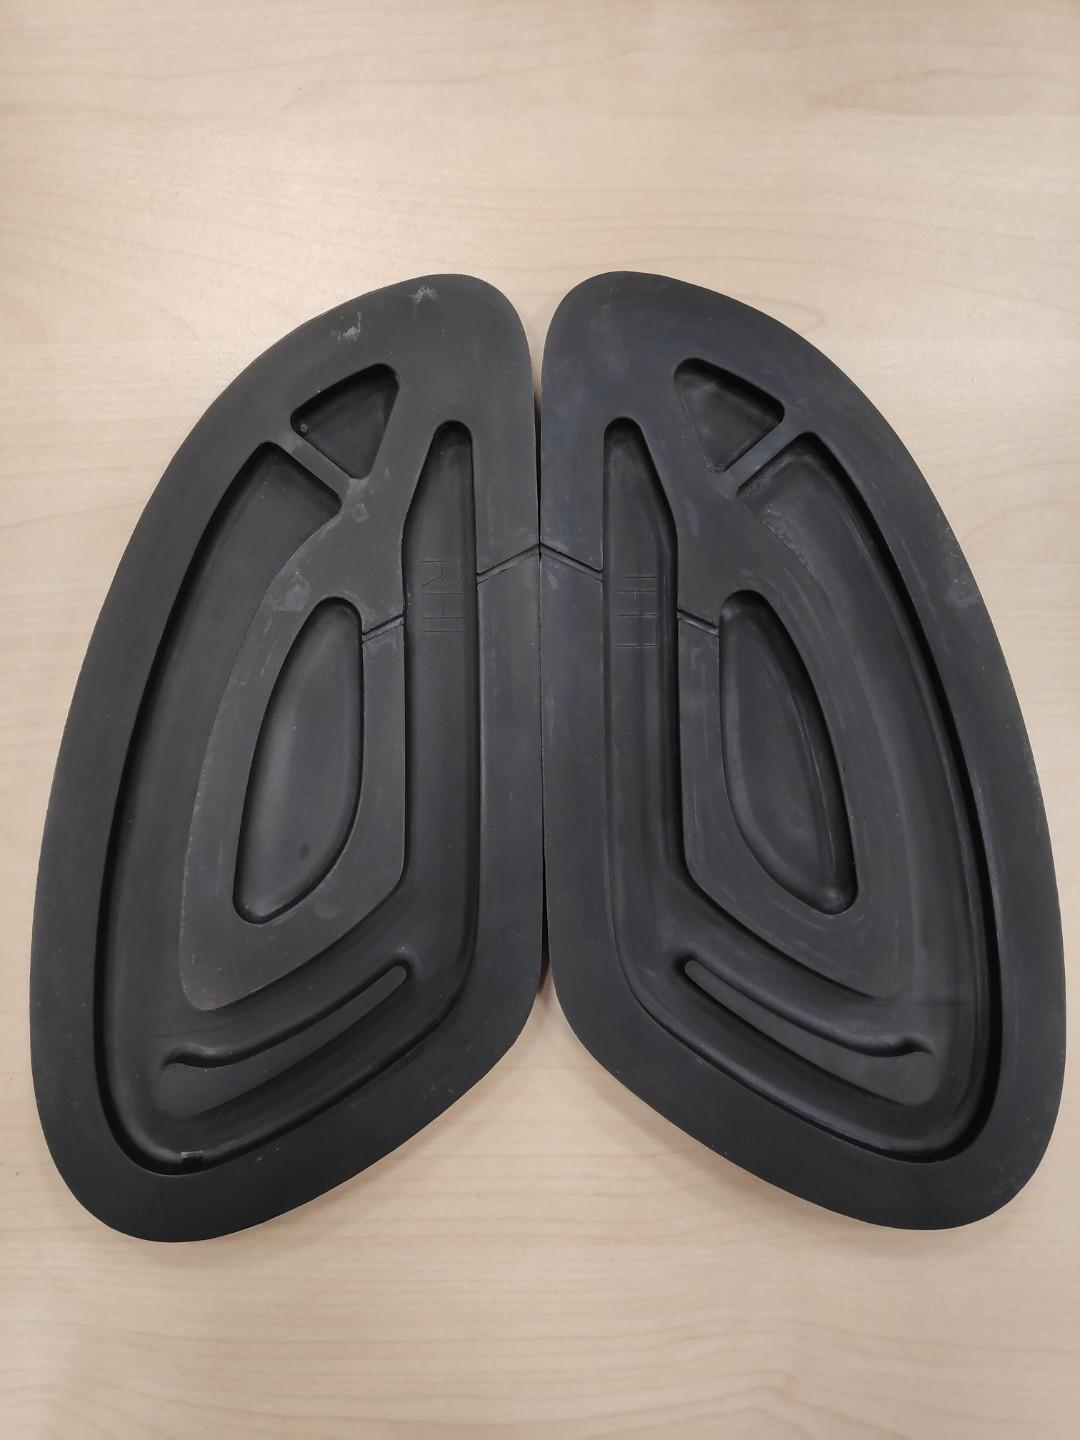 Triumph Knee Tank Pads for Modern Classic